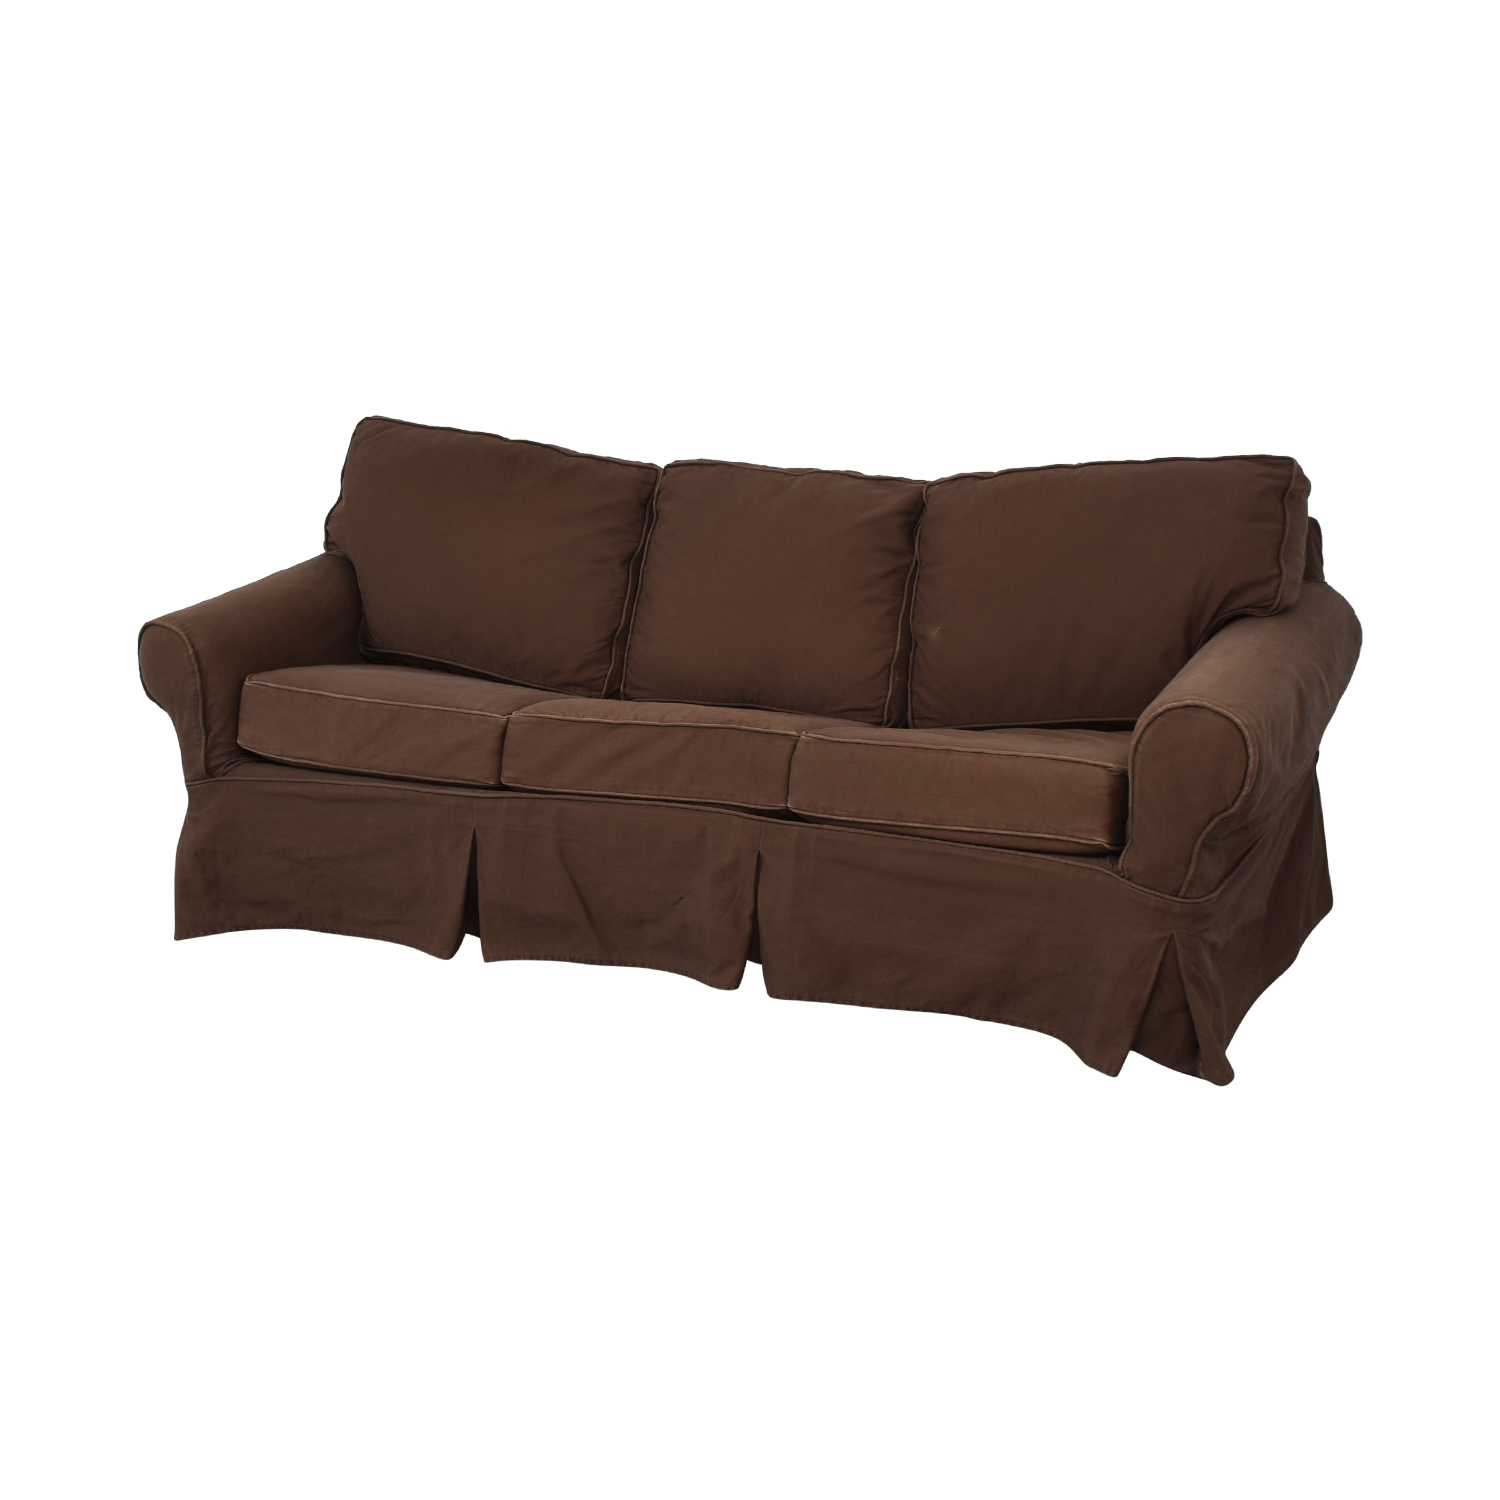 Mitchell Gold + Bob Williams Pottery Barn by Mitchell Gold + Bob Williams Sleeper Sofa brown